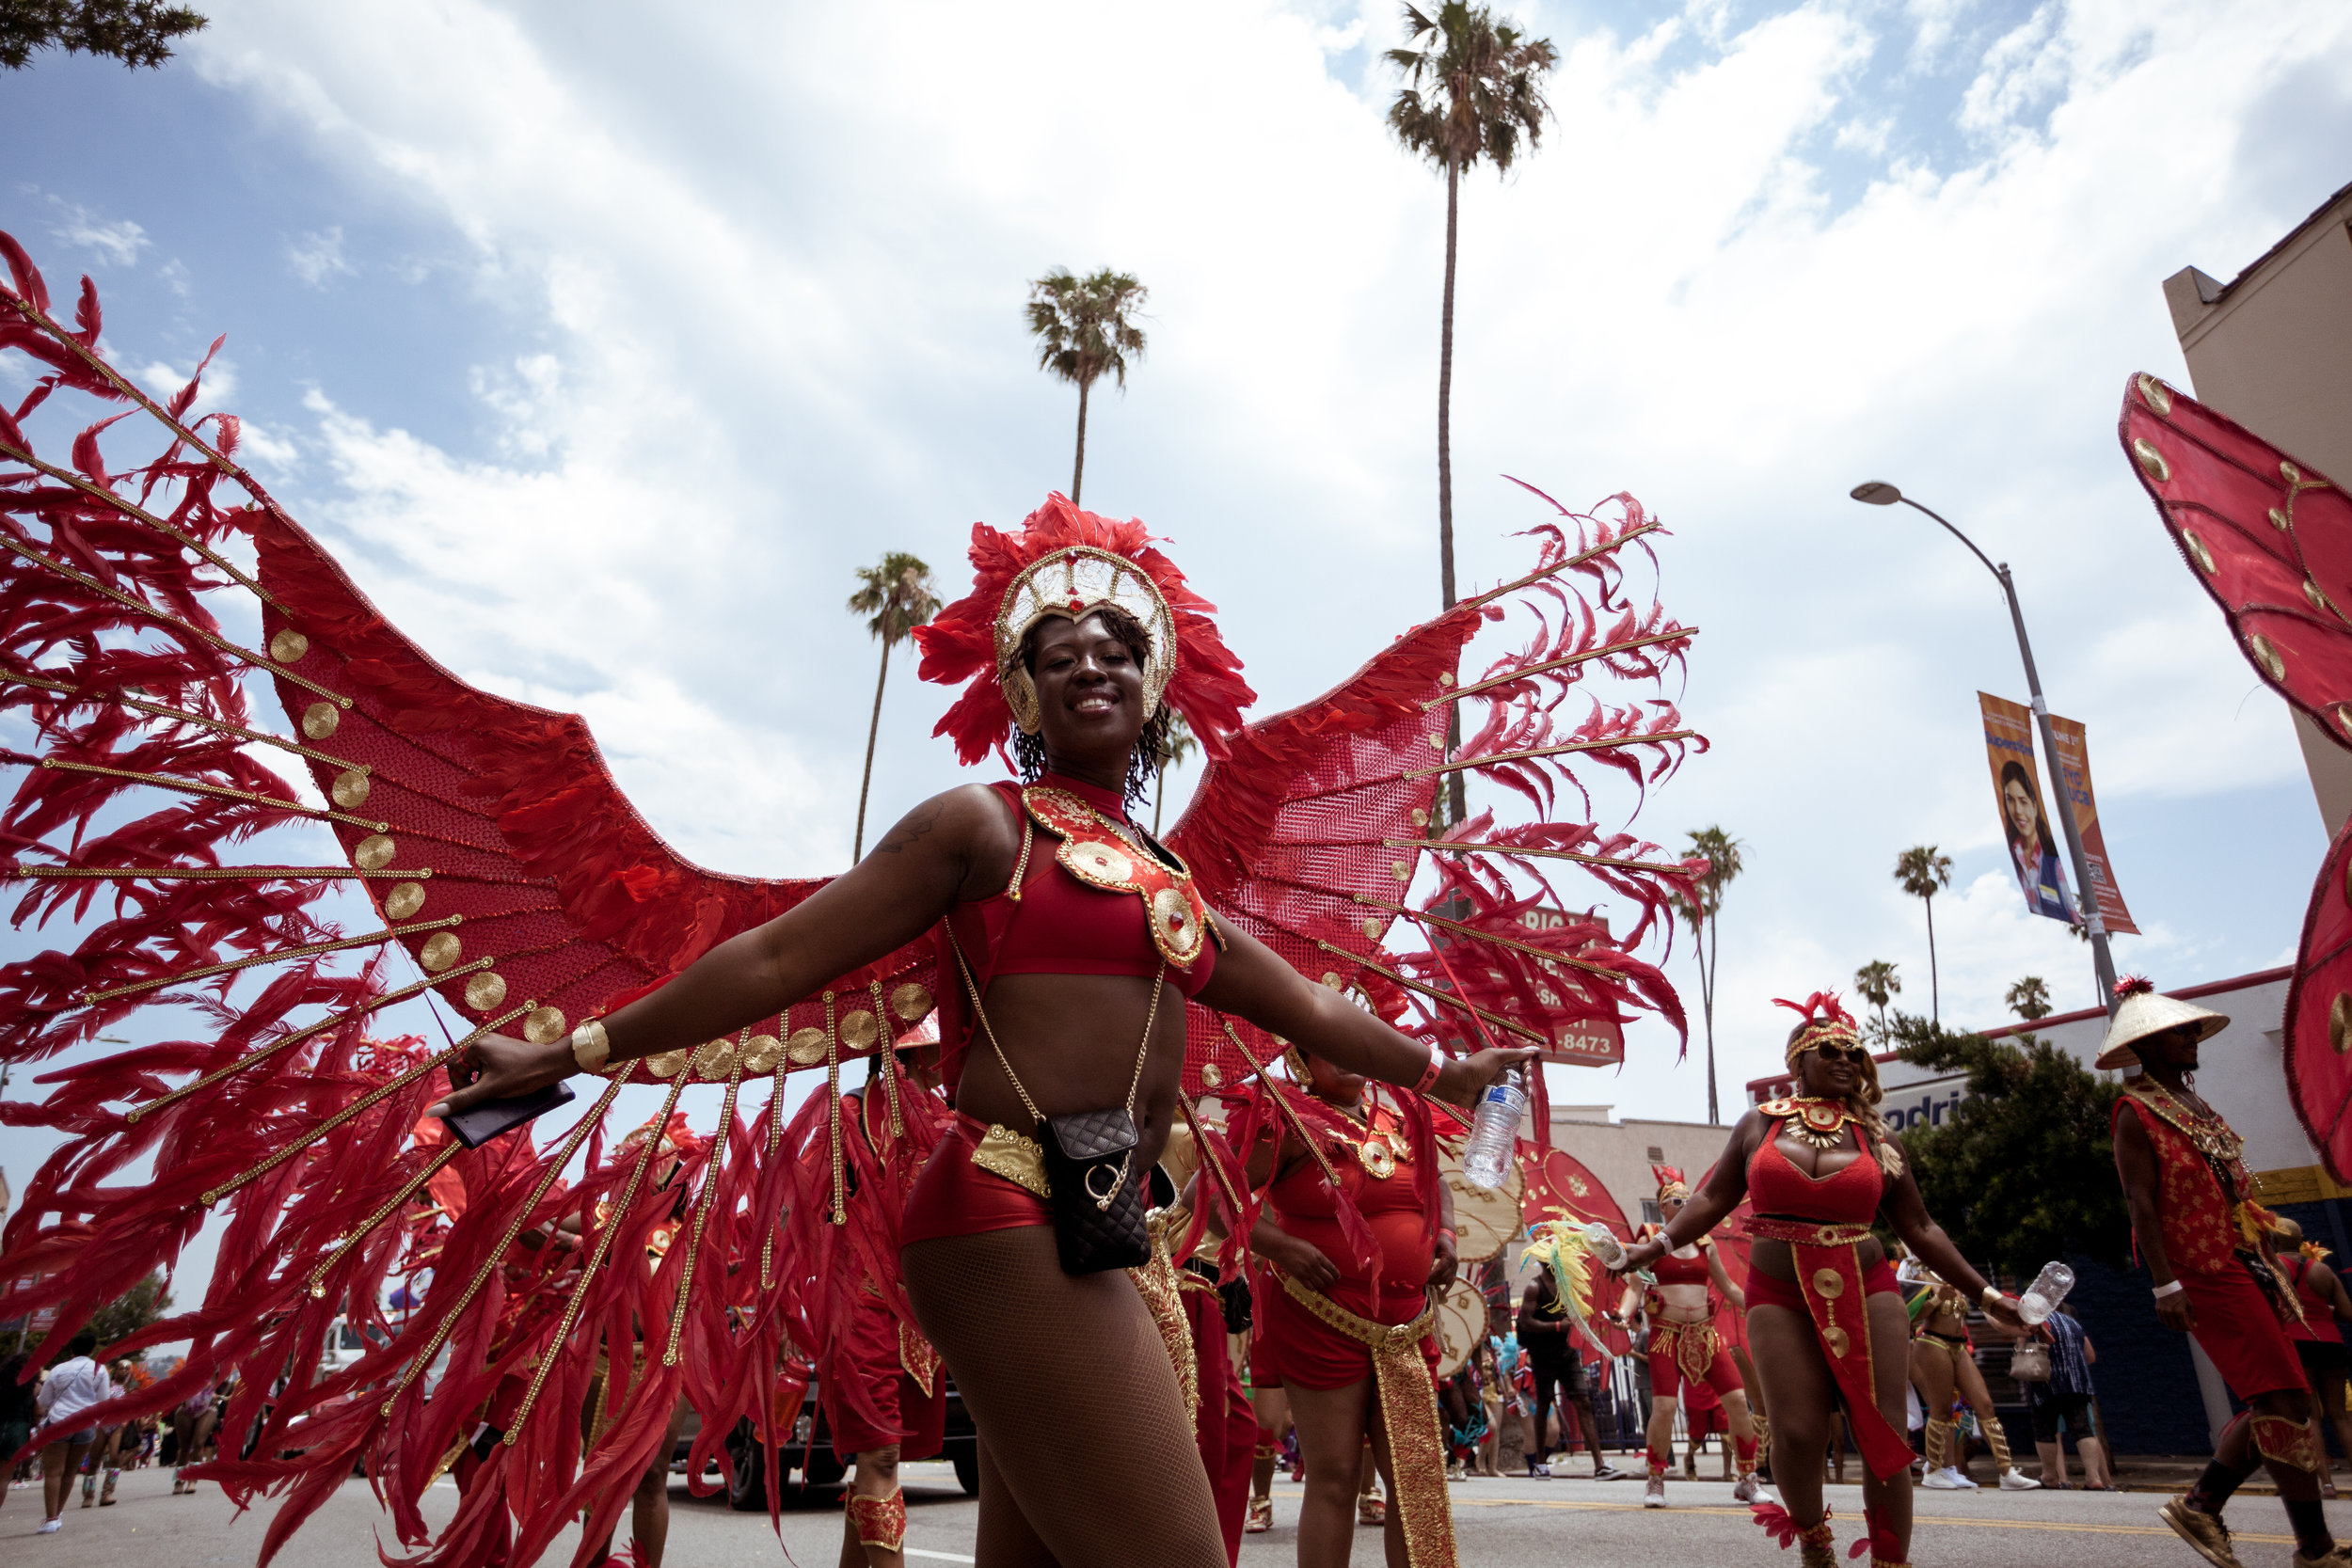 Chacon Images_Carnaval_Print-5874.jpg